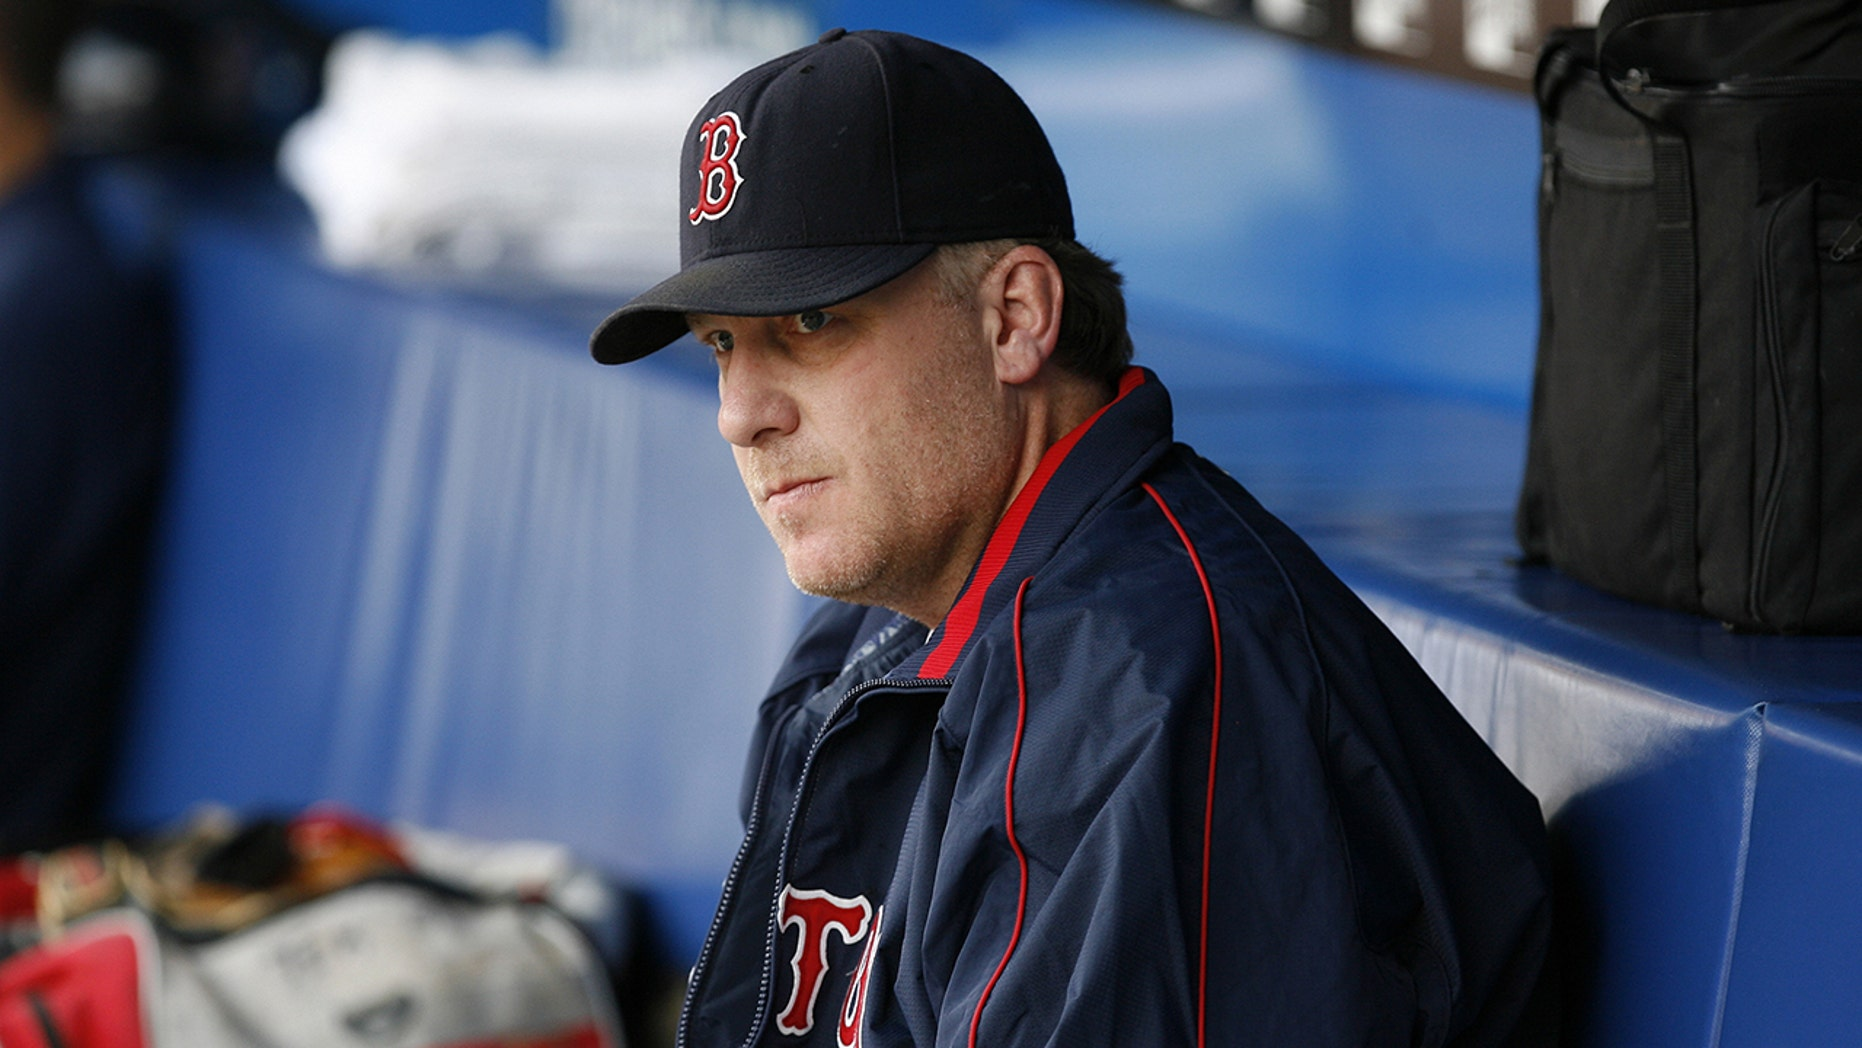 Outspoken Conservative Curt Schilling Snubbed By Red Sox at World Series Ceremony